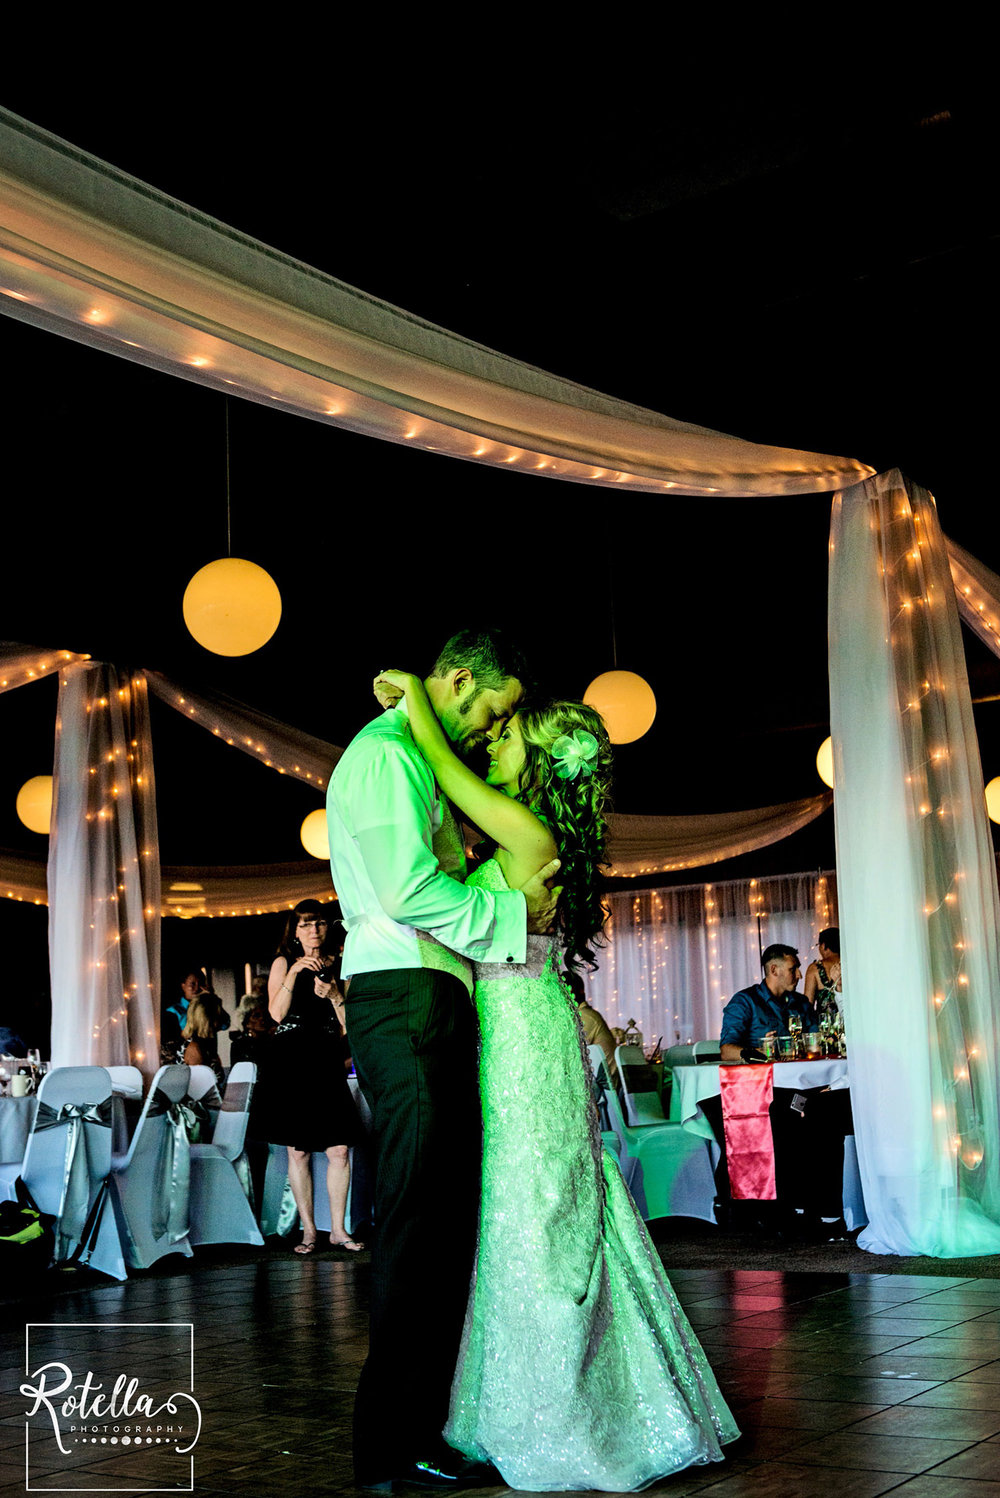 Bride and groom's first dance by Rotella Photography